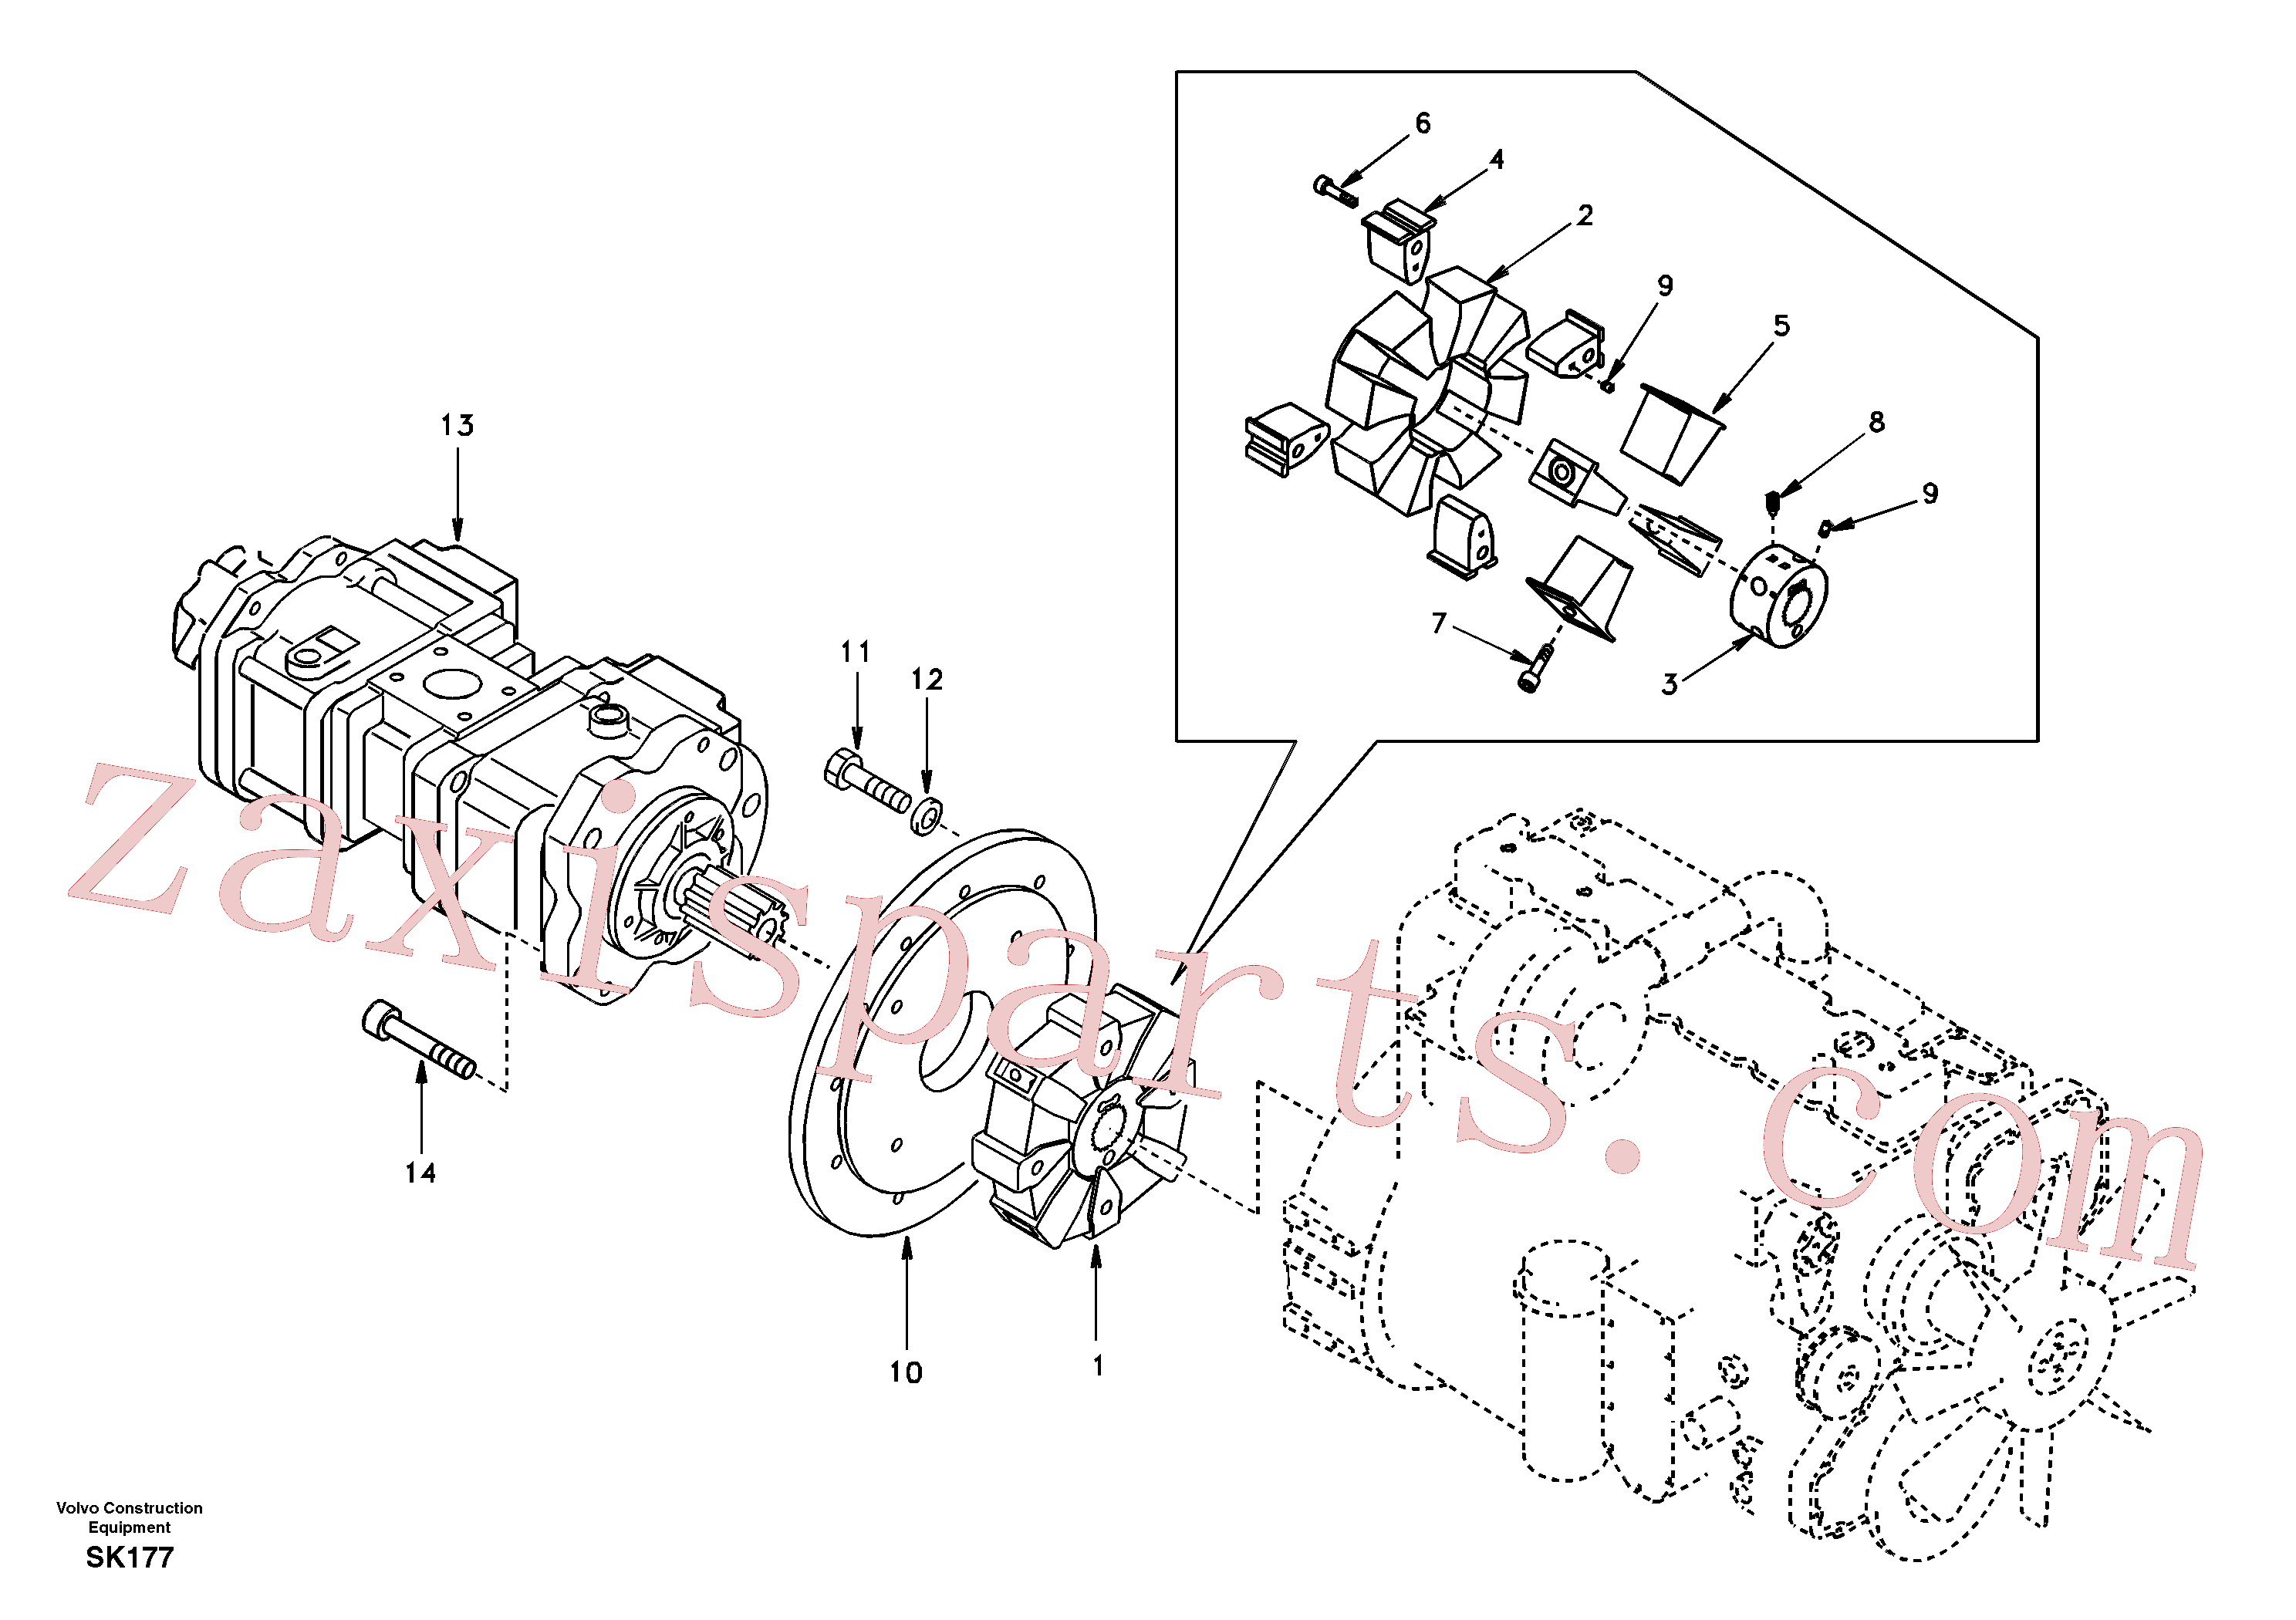 SADF046 for Volvo Pump gearbox with assembling parts(SK177 assembly)